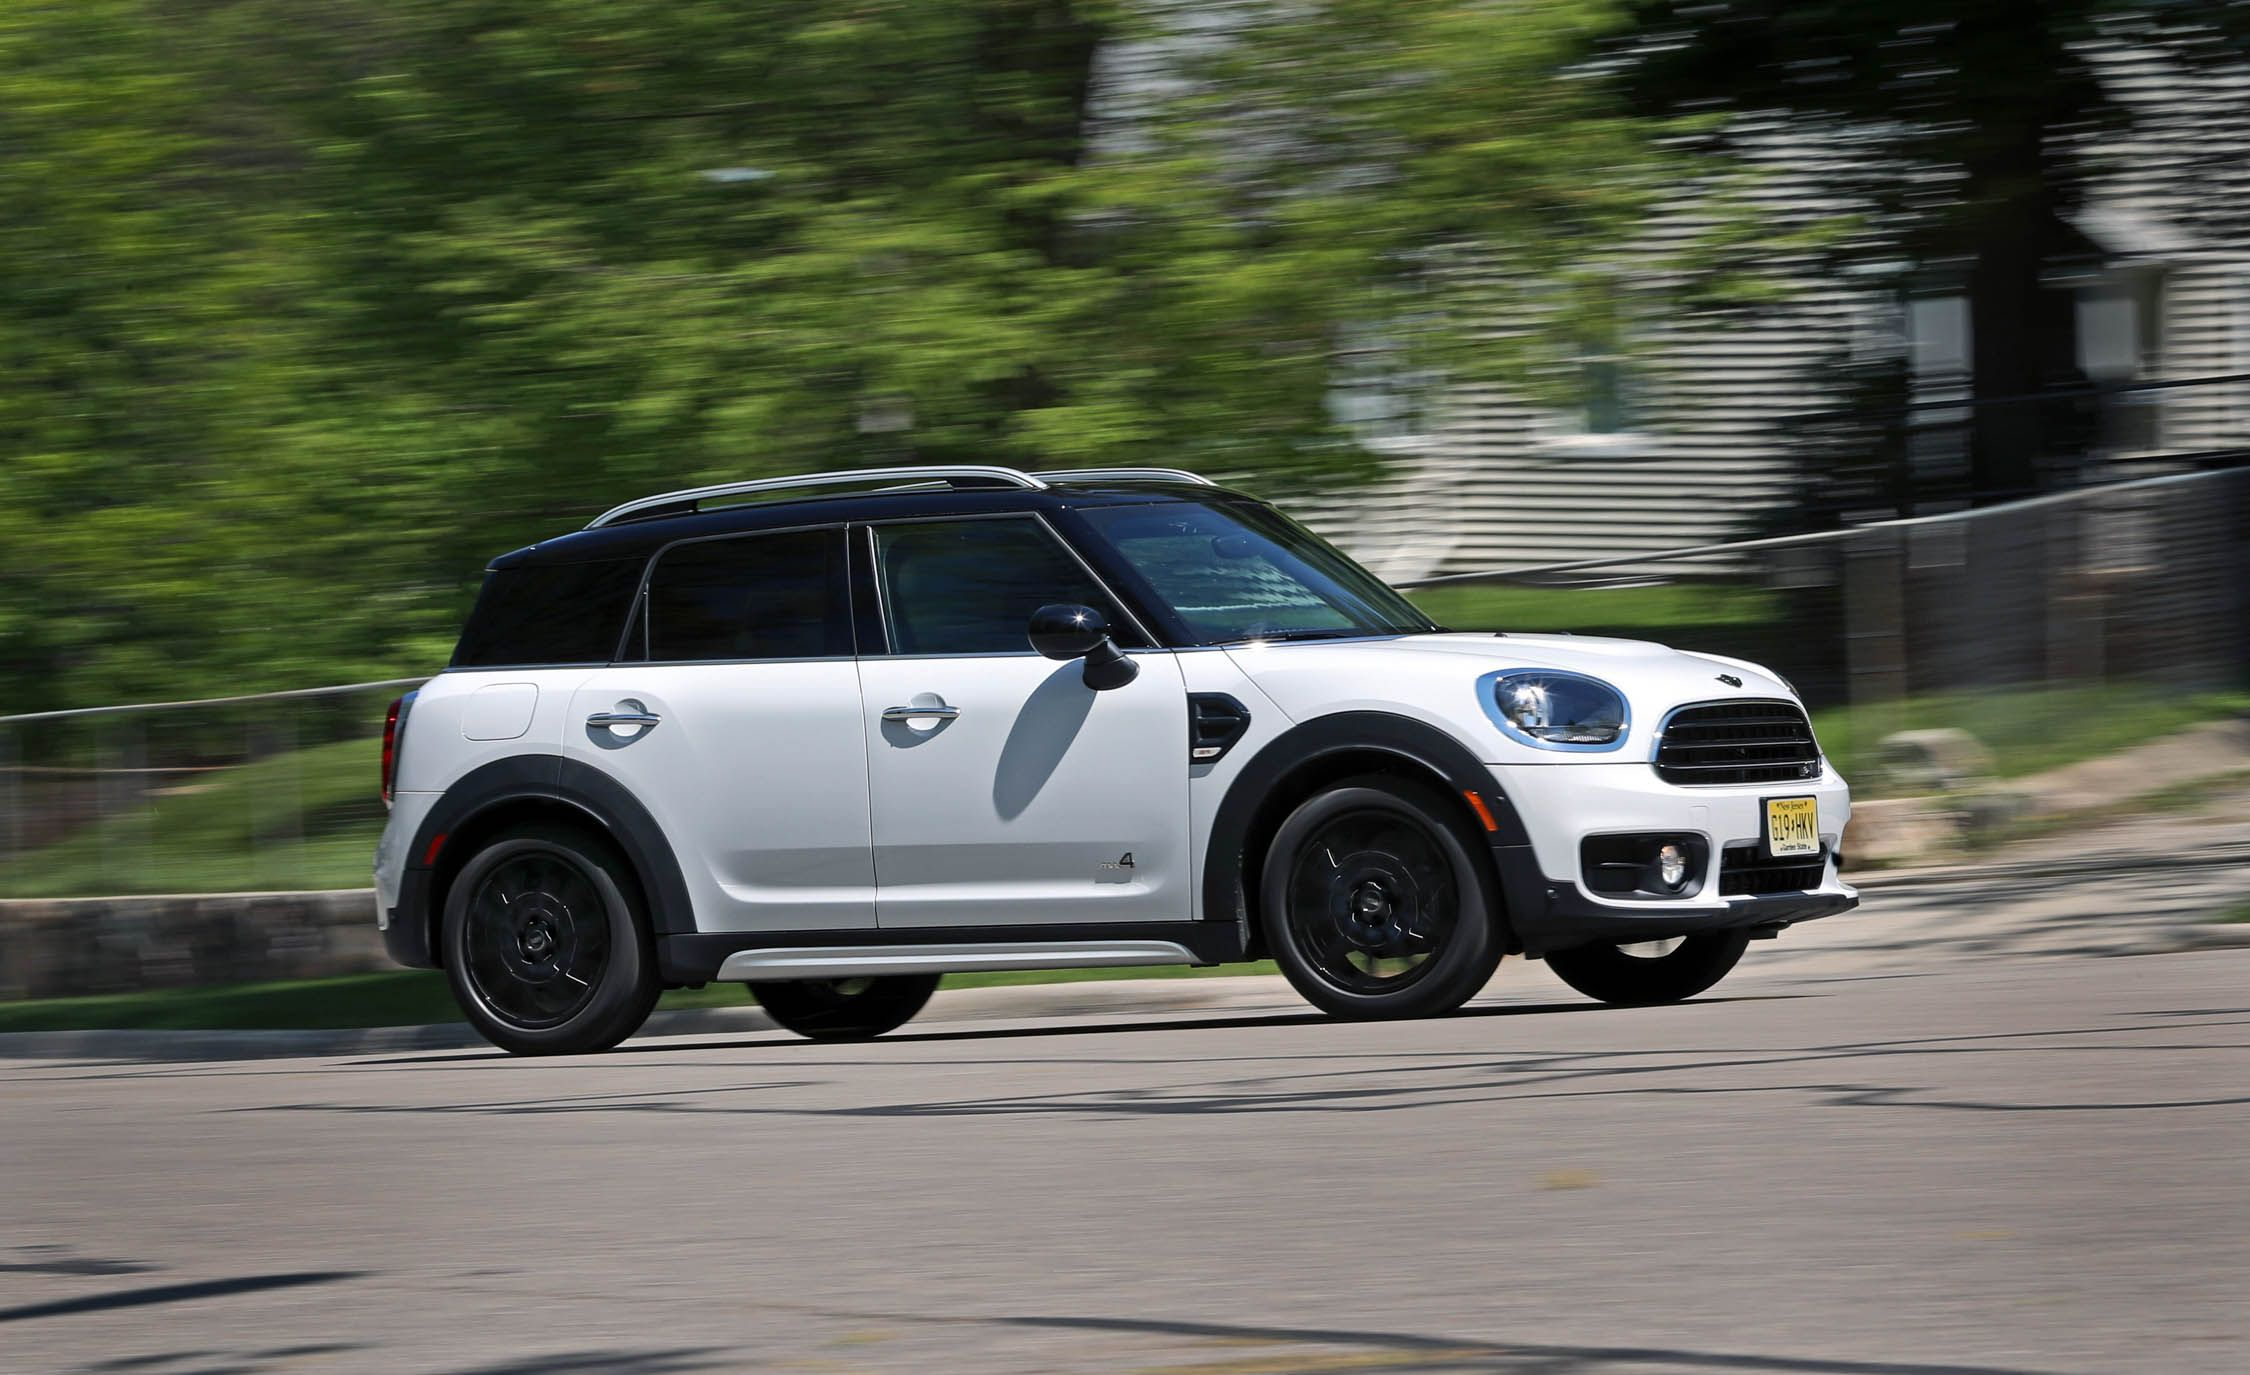 2017 Mini Cooper Countryman Fuel Economy And Driving Range Review